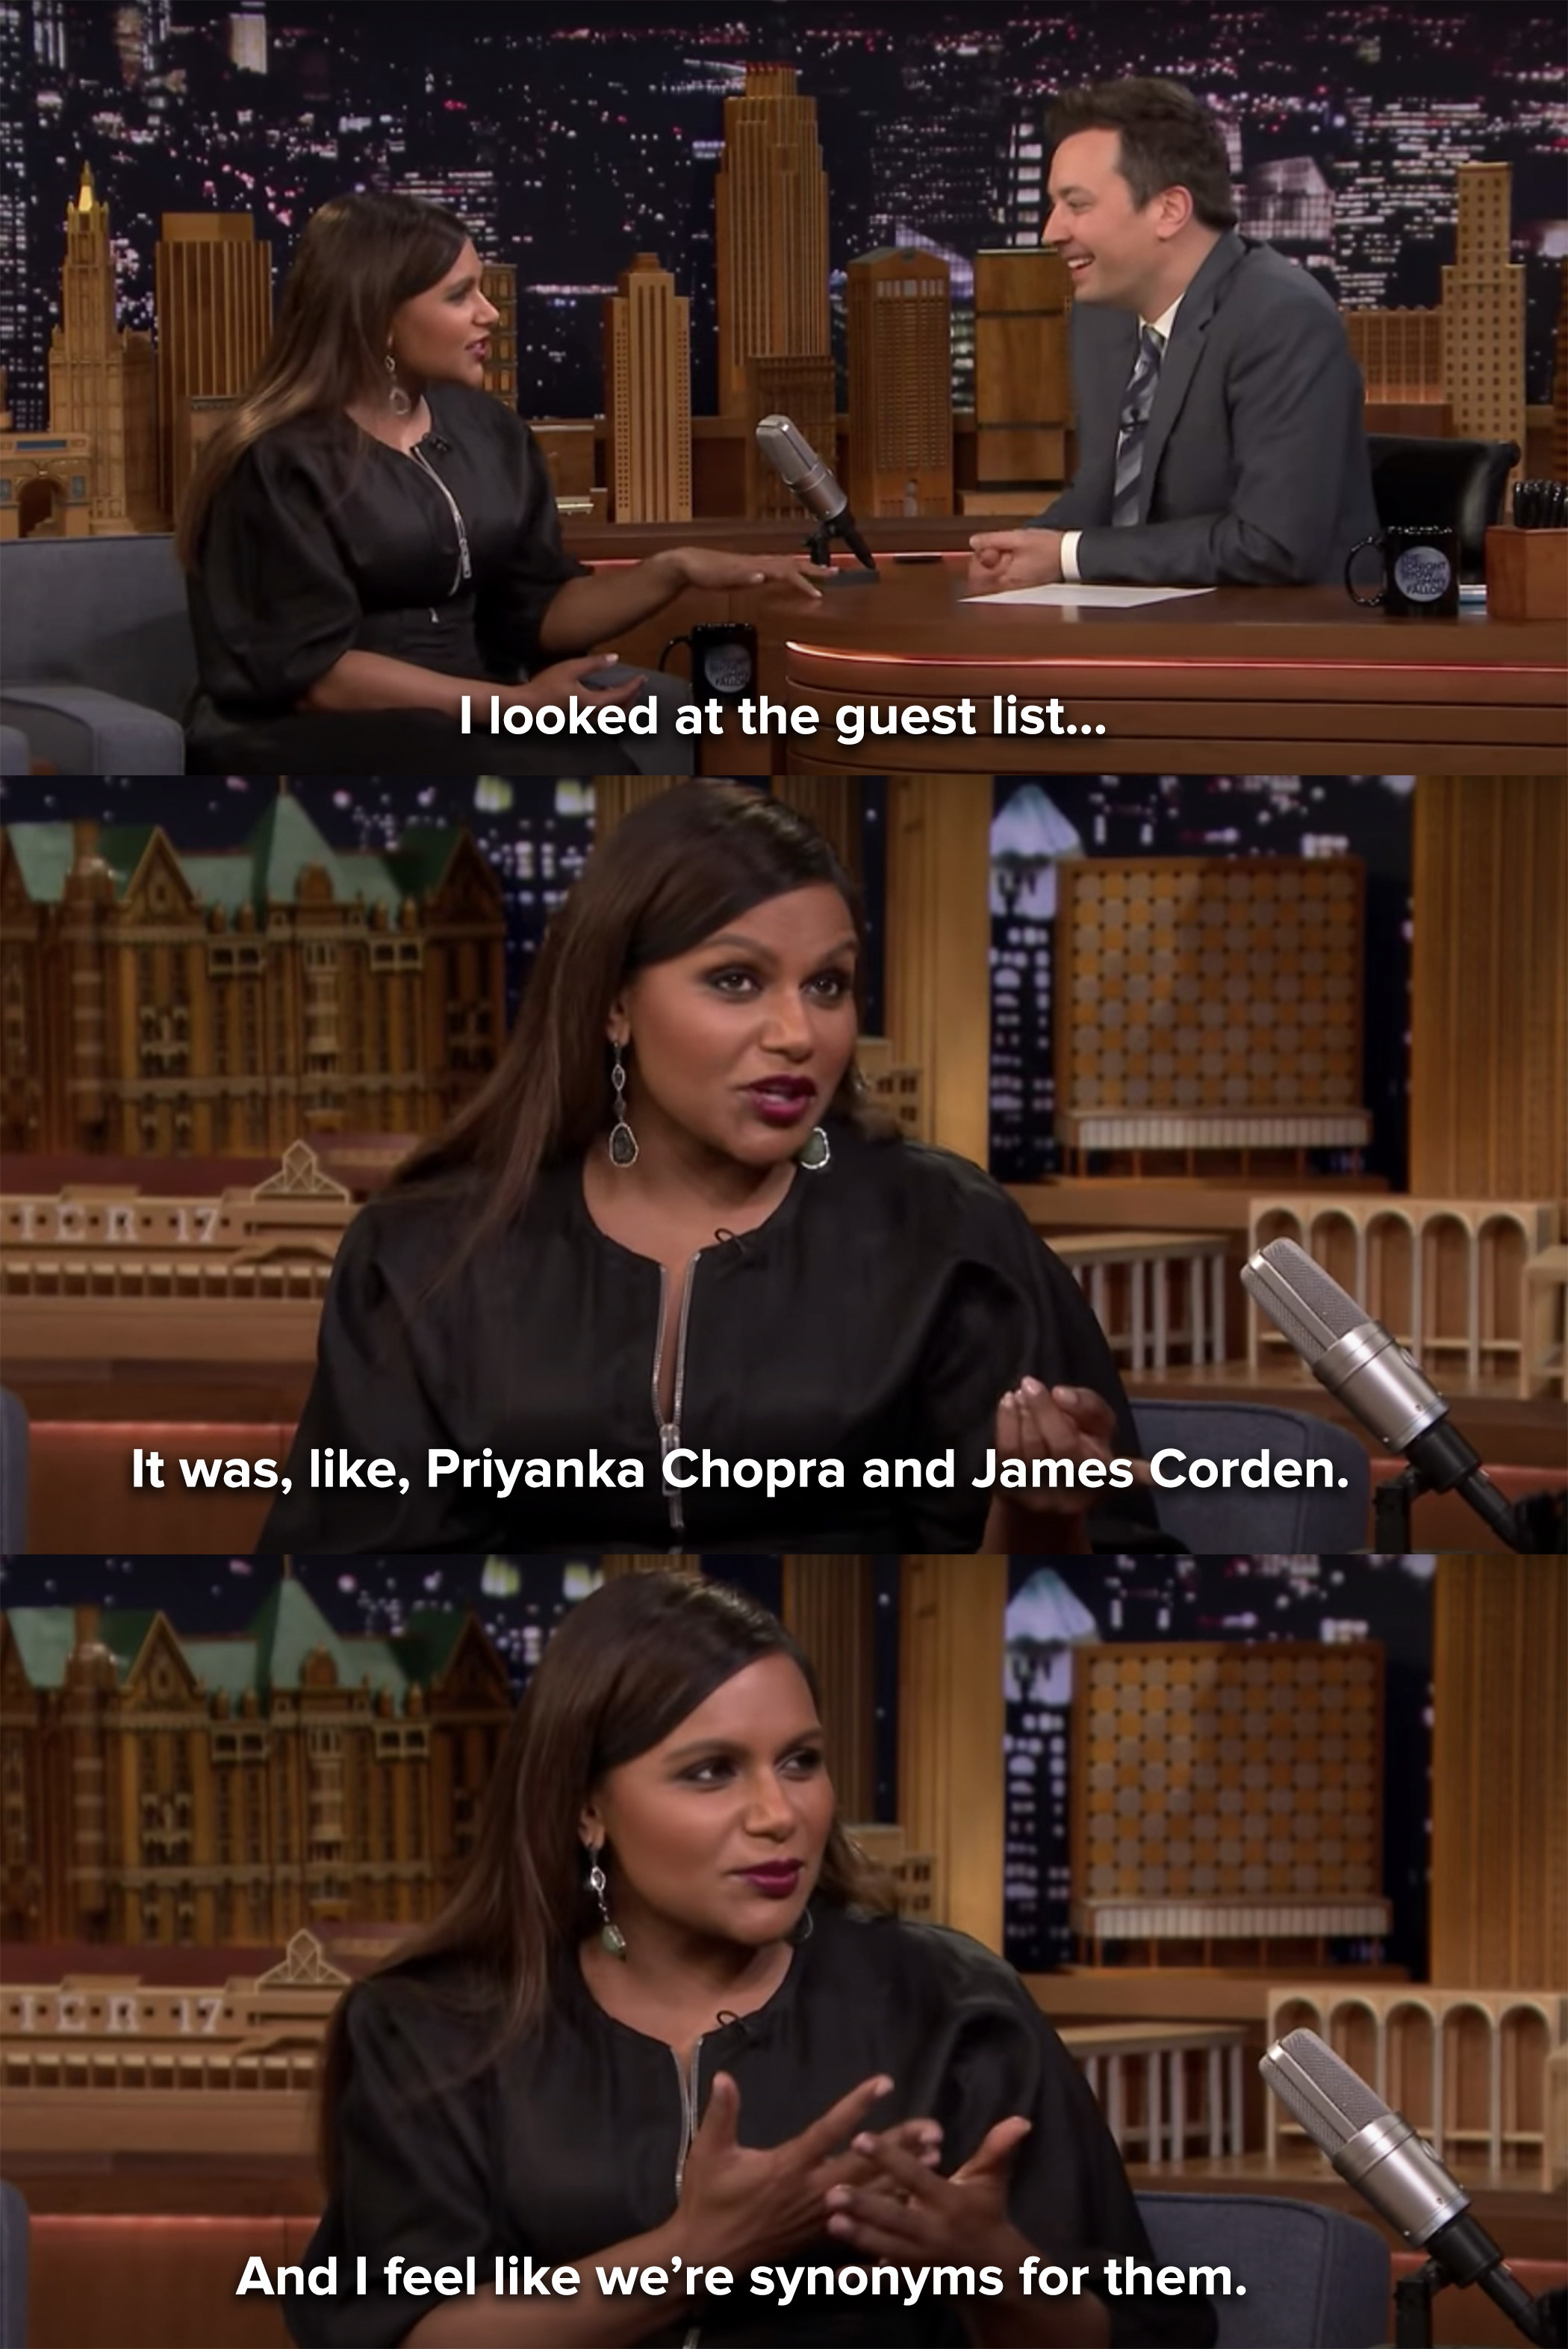 Mindy says she saw Priyanka Chopra and James Corden on the guest list, and she feels like she and Jimmy are syonyms for them